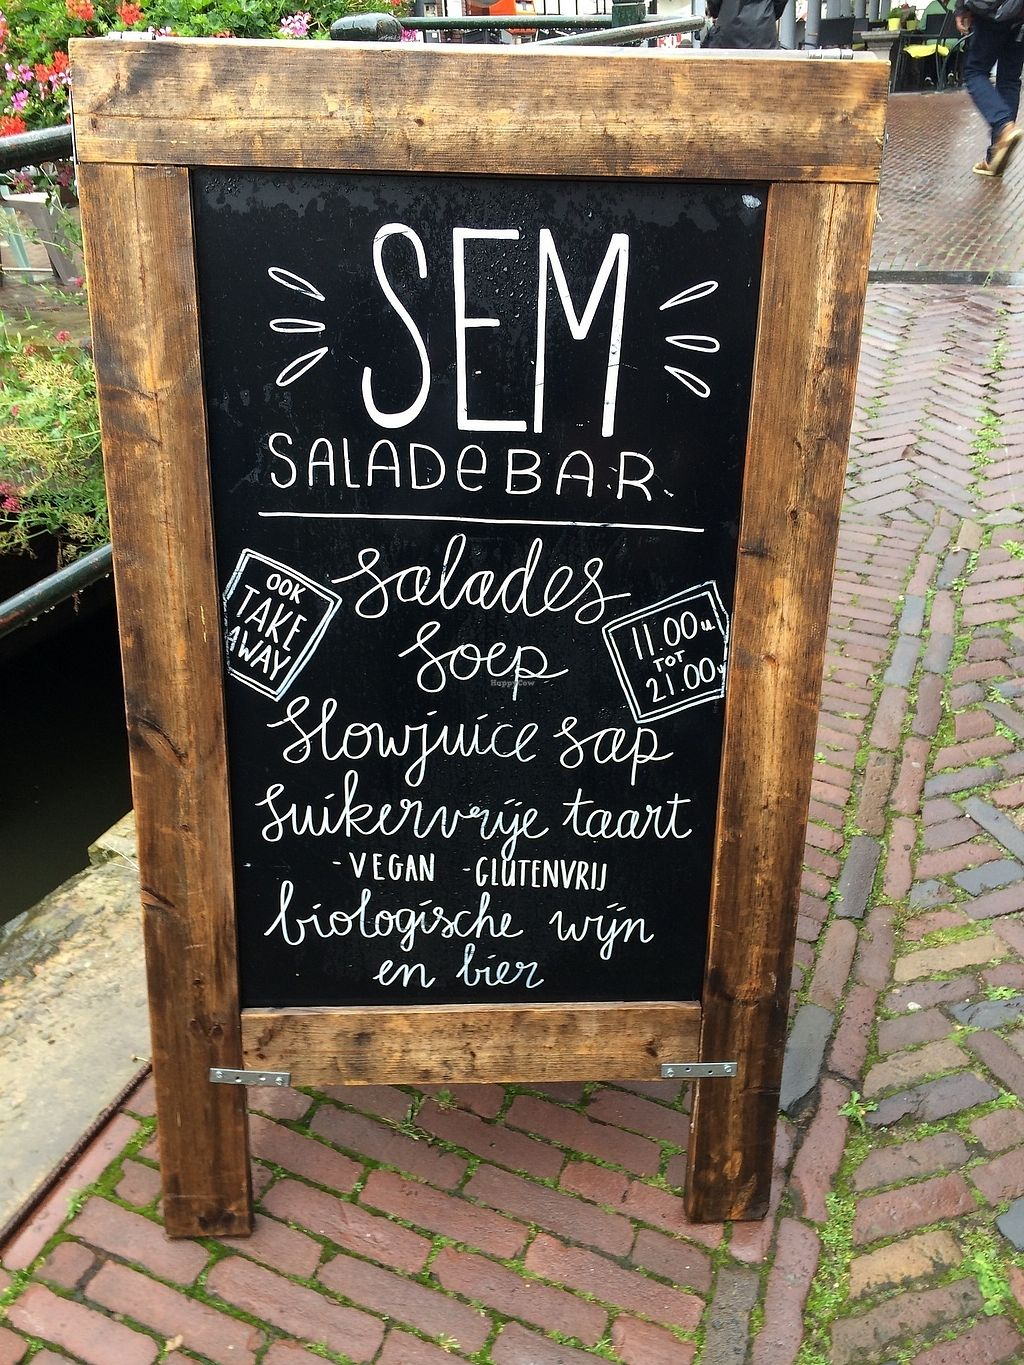 """Photo of SEM Sla En Meer  by <a href=""""/members/profile/Mawu"""">Mawu</a> <br/>Salads- choose from menu or compose your own, Soups, delicious cakes, very good smooth  coffee!  <br/> August 1, 2017  - <a href='/contact/abuse/image/60425/287759'>Report</a>"""